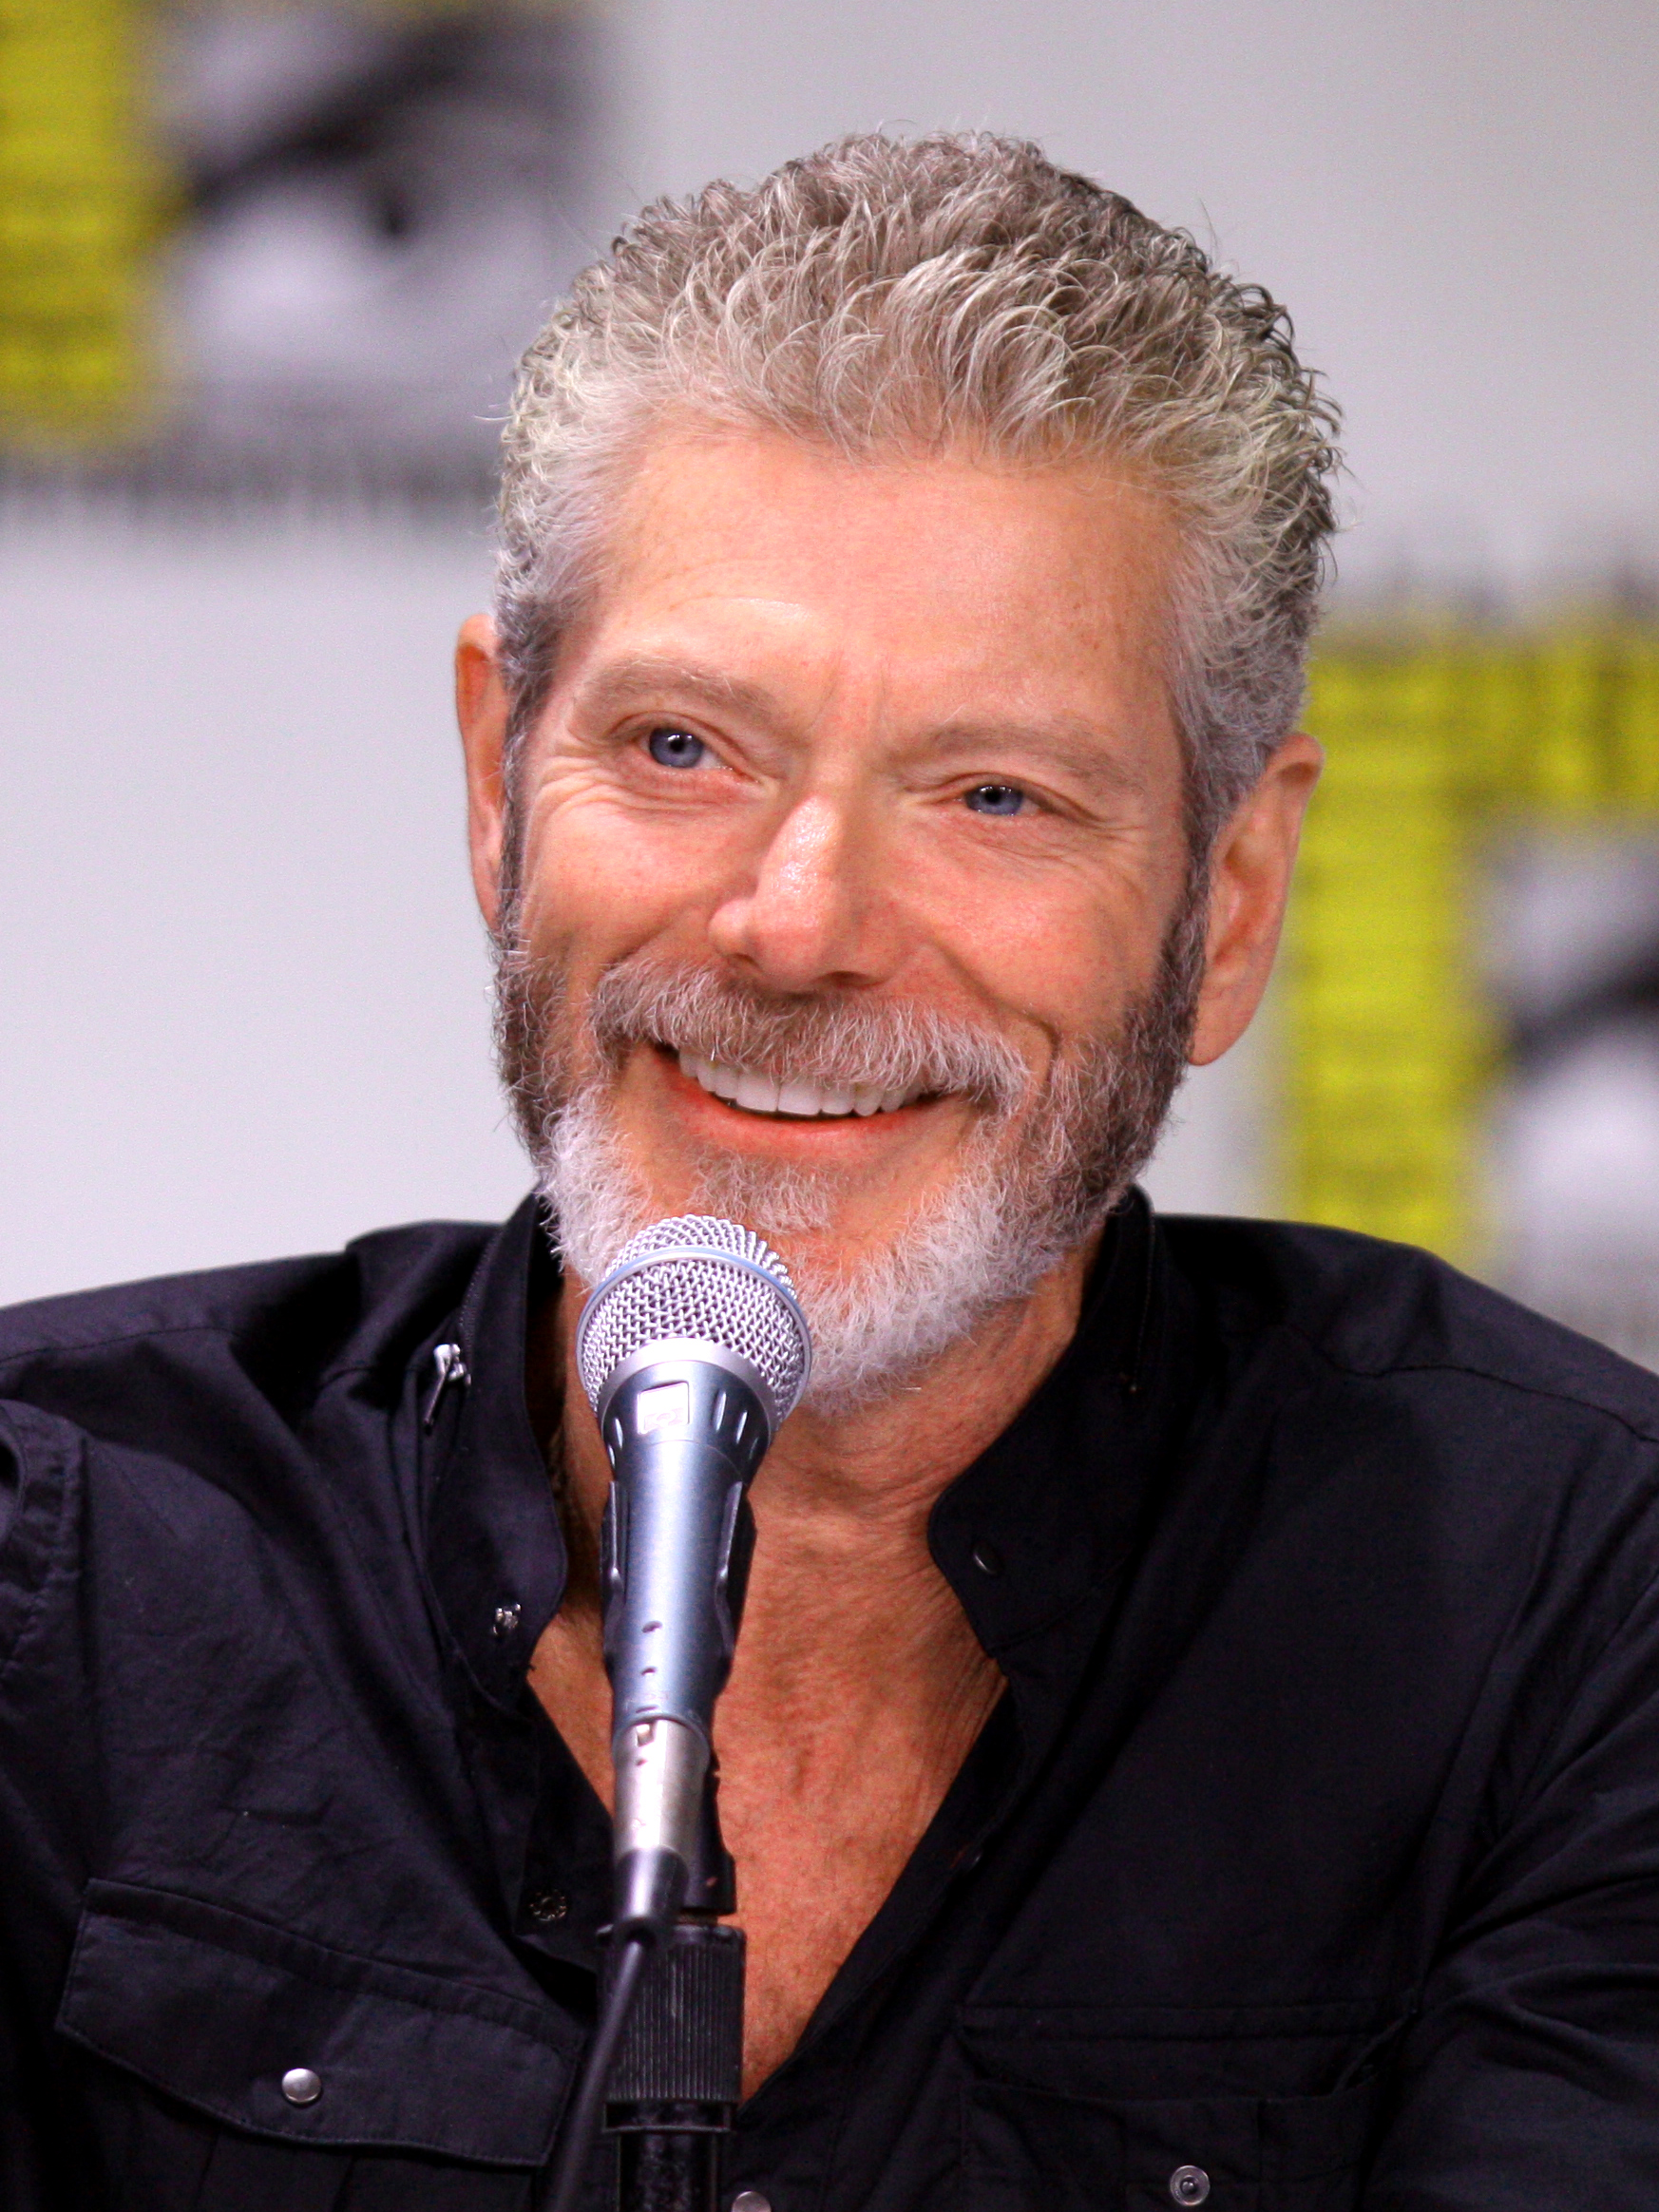 Stephen Lang – Wikipedia